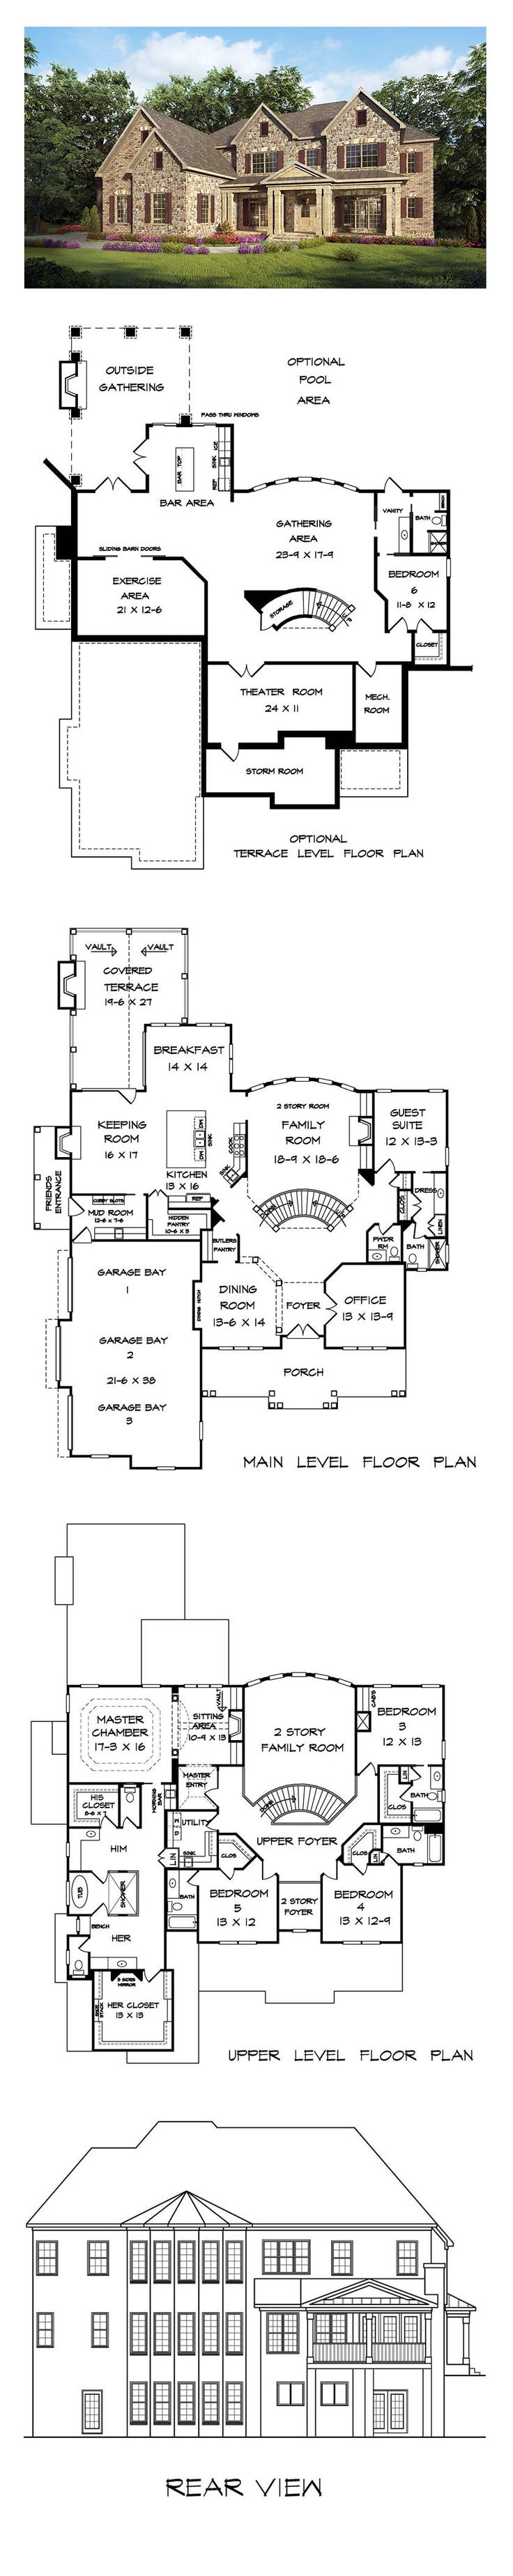 New House Plan 58256 | Total Living Area: 4819 Sq. Ft., 5